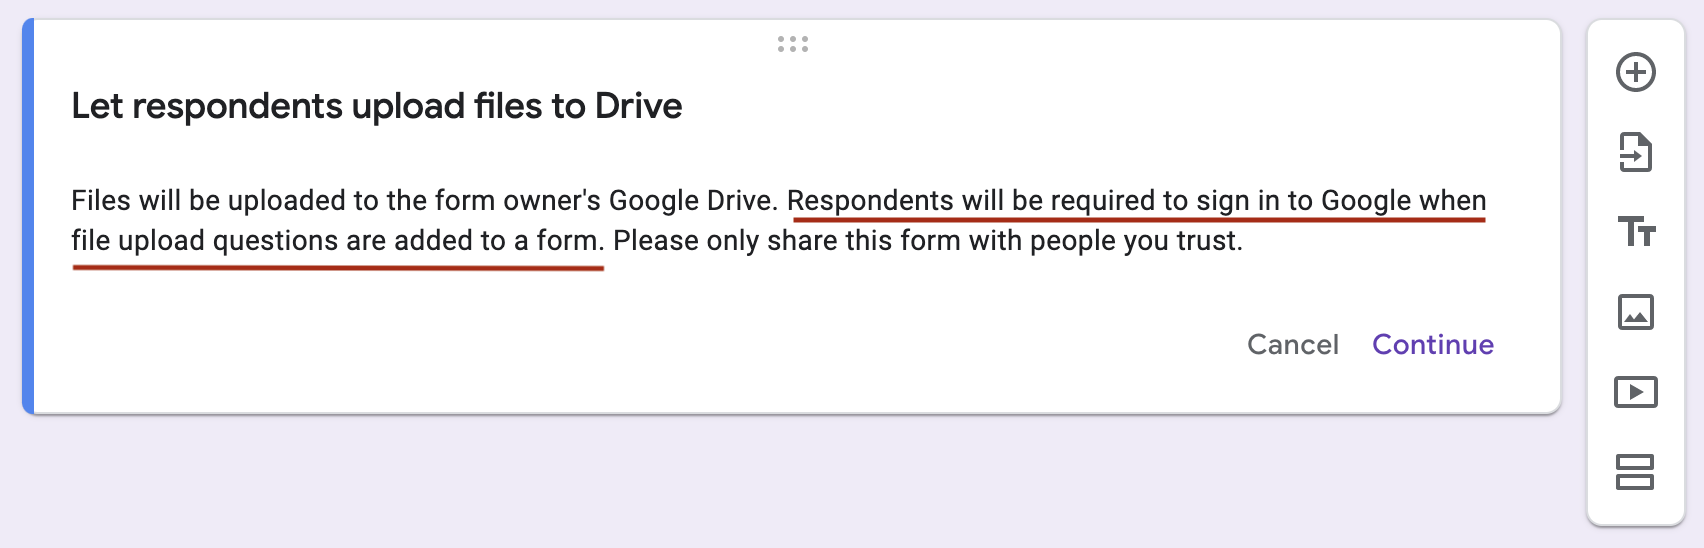 message from Google saying respondents need to sign in to Google to upload forms